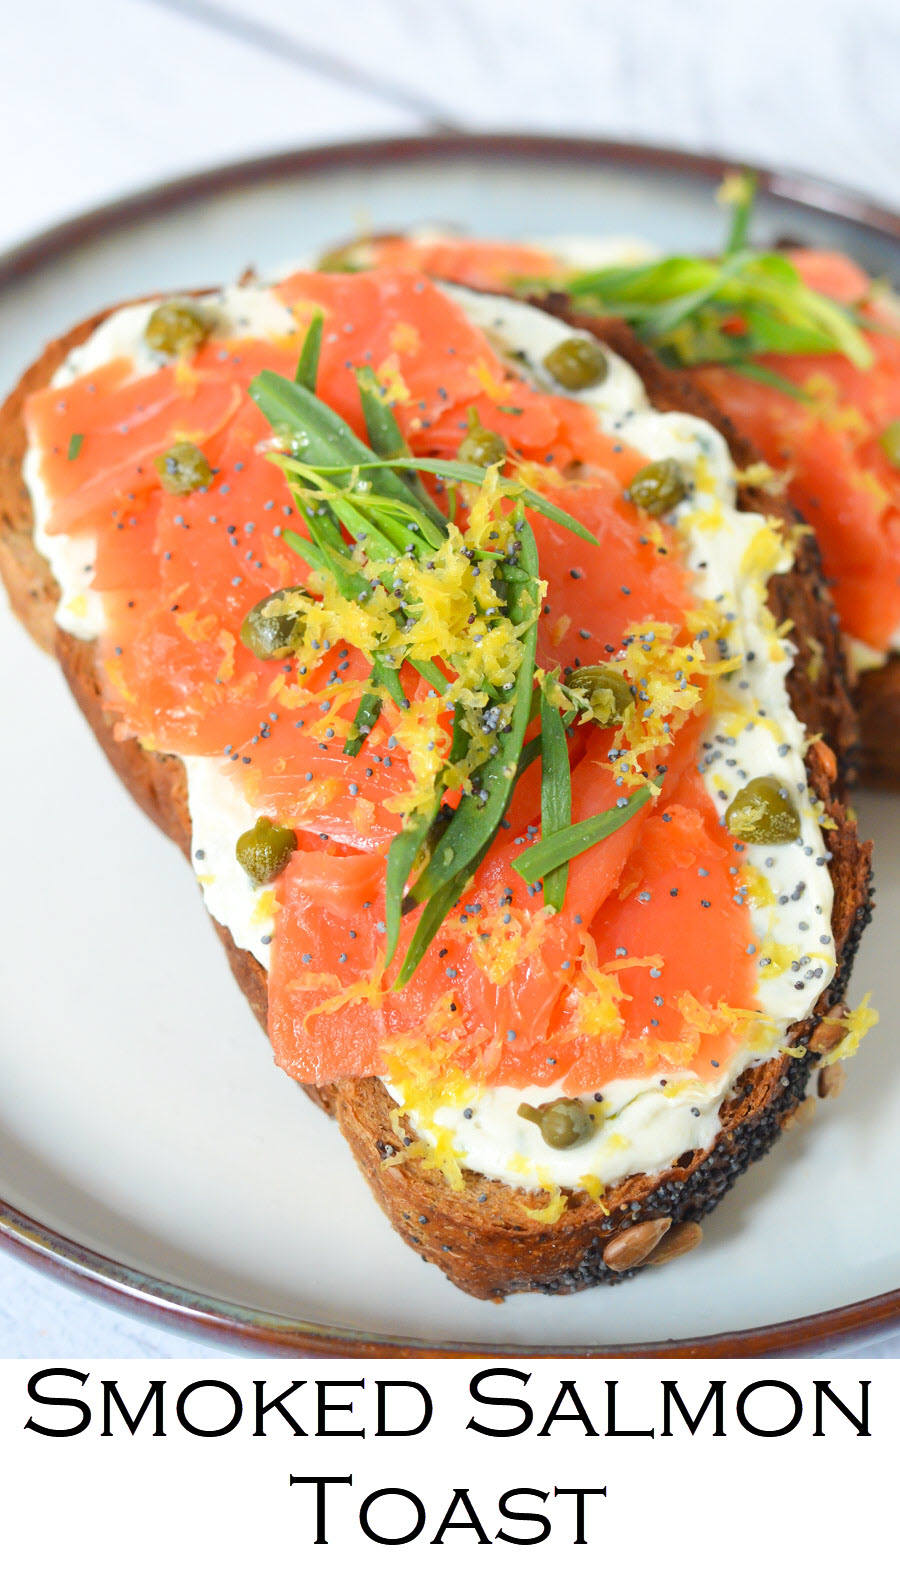 Smoked Salmon Toast - Lox and Goat Cheese Tartine. Whip up this easy smoked salmon tartine for breakfast, lunch, or dinner. Good lox layered over goat cheese on delicious bread! #breakfast #brunch #salmon #tartine #toasts #recipe #foodblog #homemade #foodblogger #lmrecipes